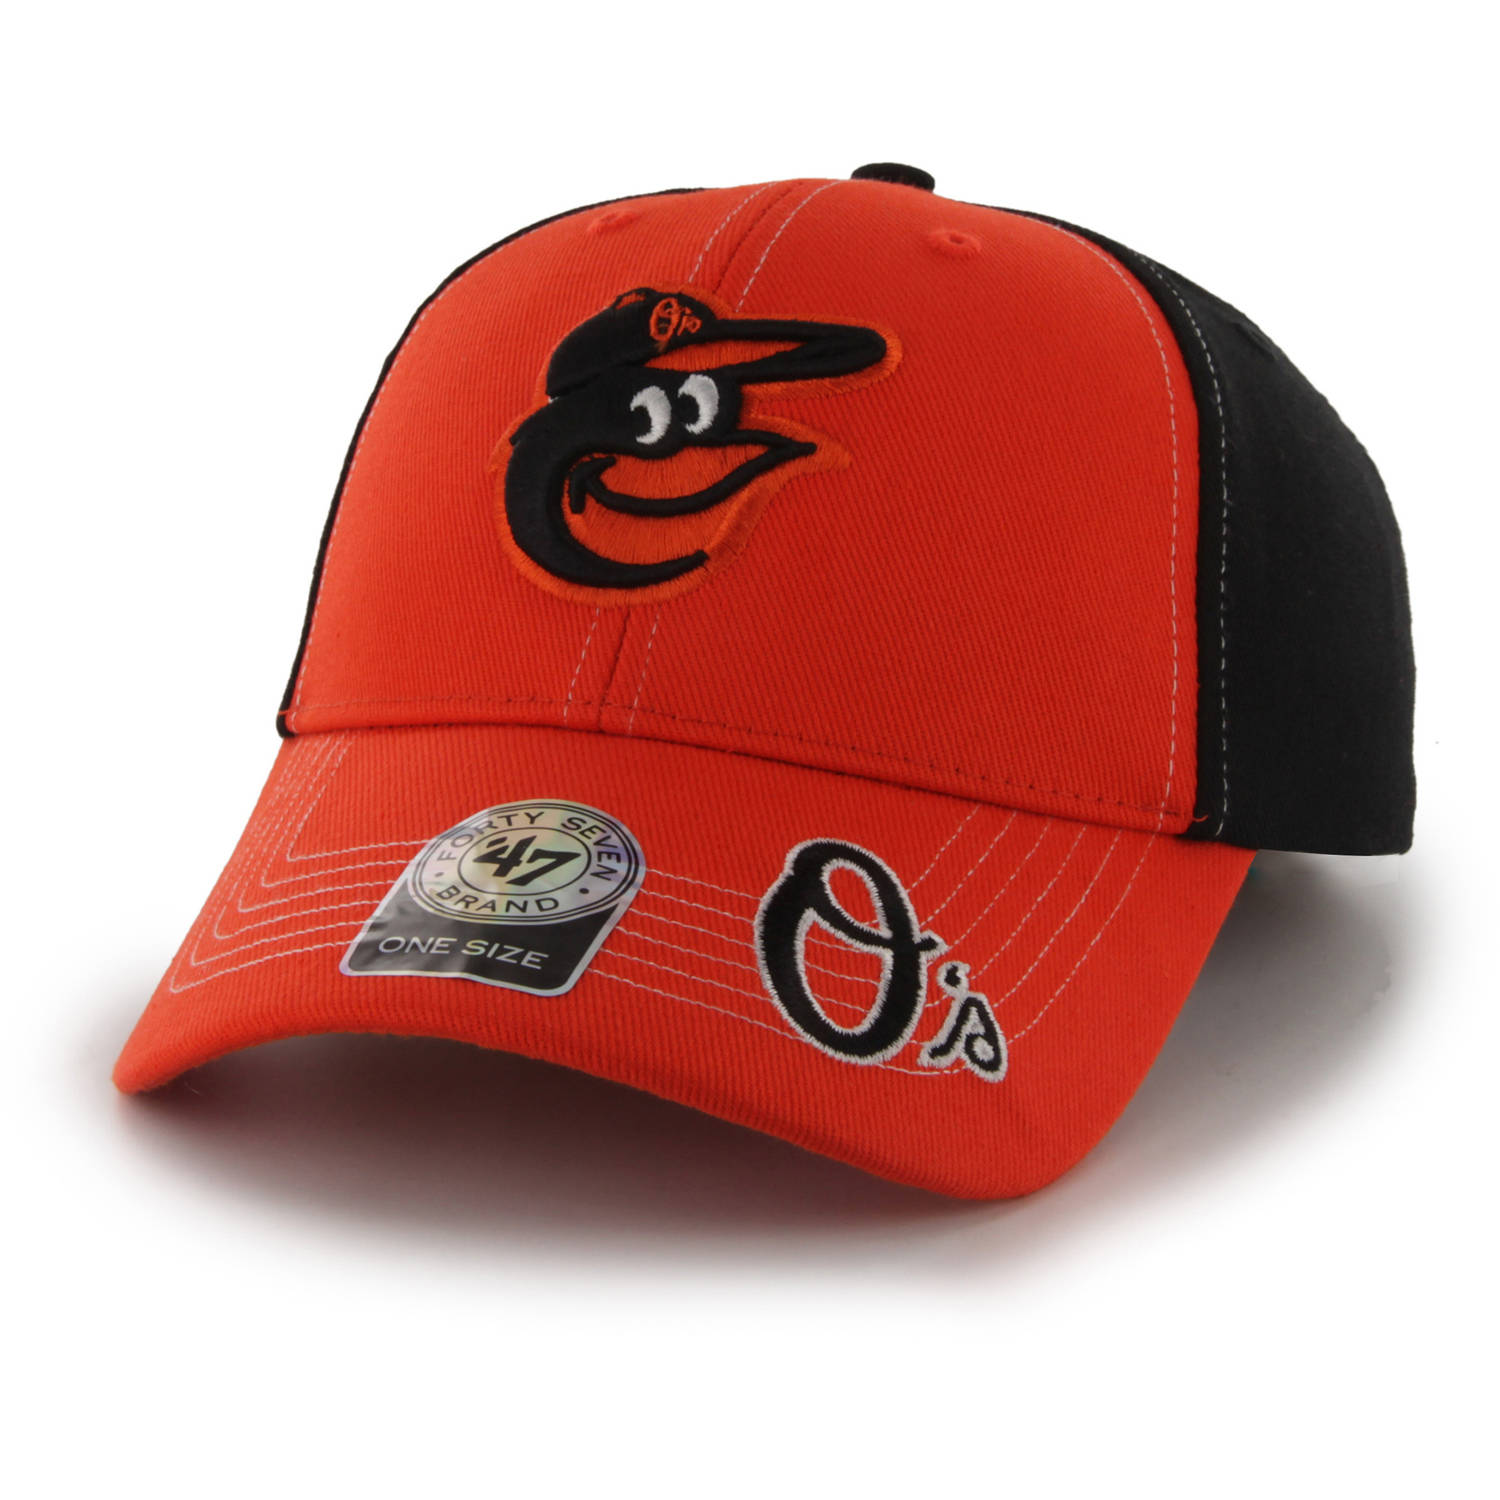 MLB Baltimore Orioles Revolver Cap / Hat by Fan Favorite